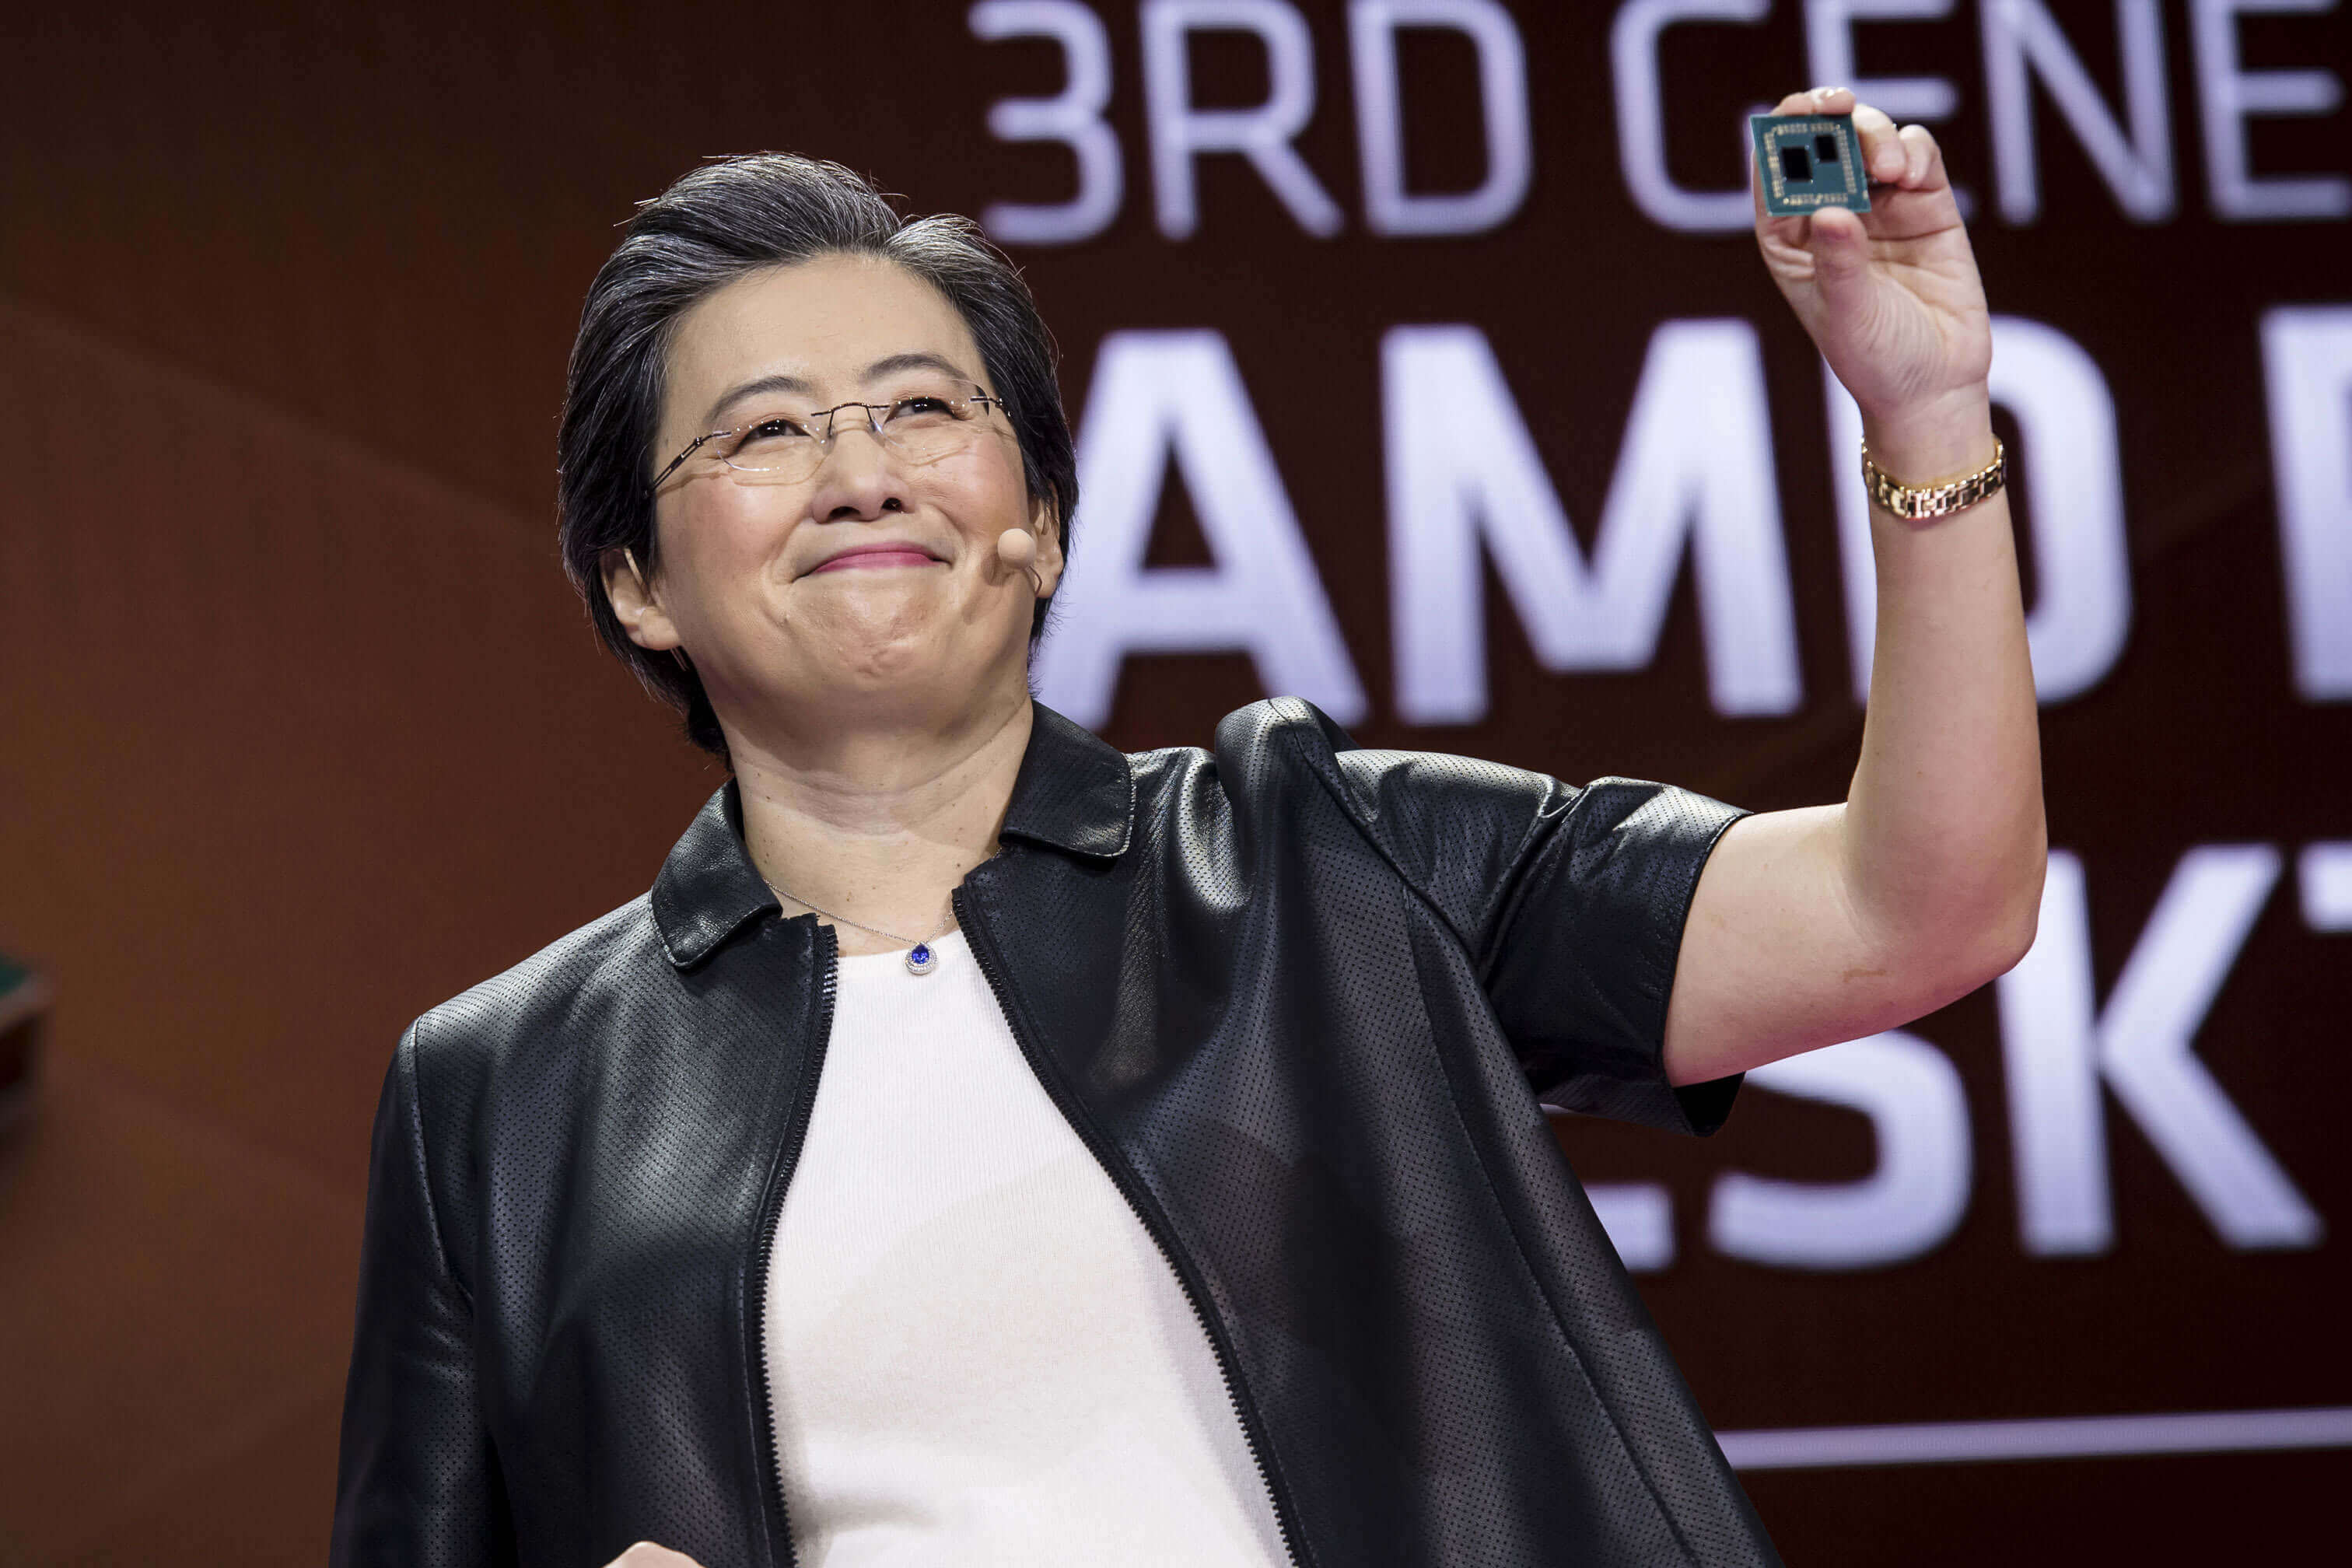 AMD confirms that X570 and B550 chipsets will support next-gen Zen 3 architecture